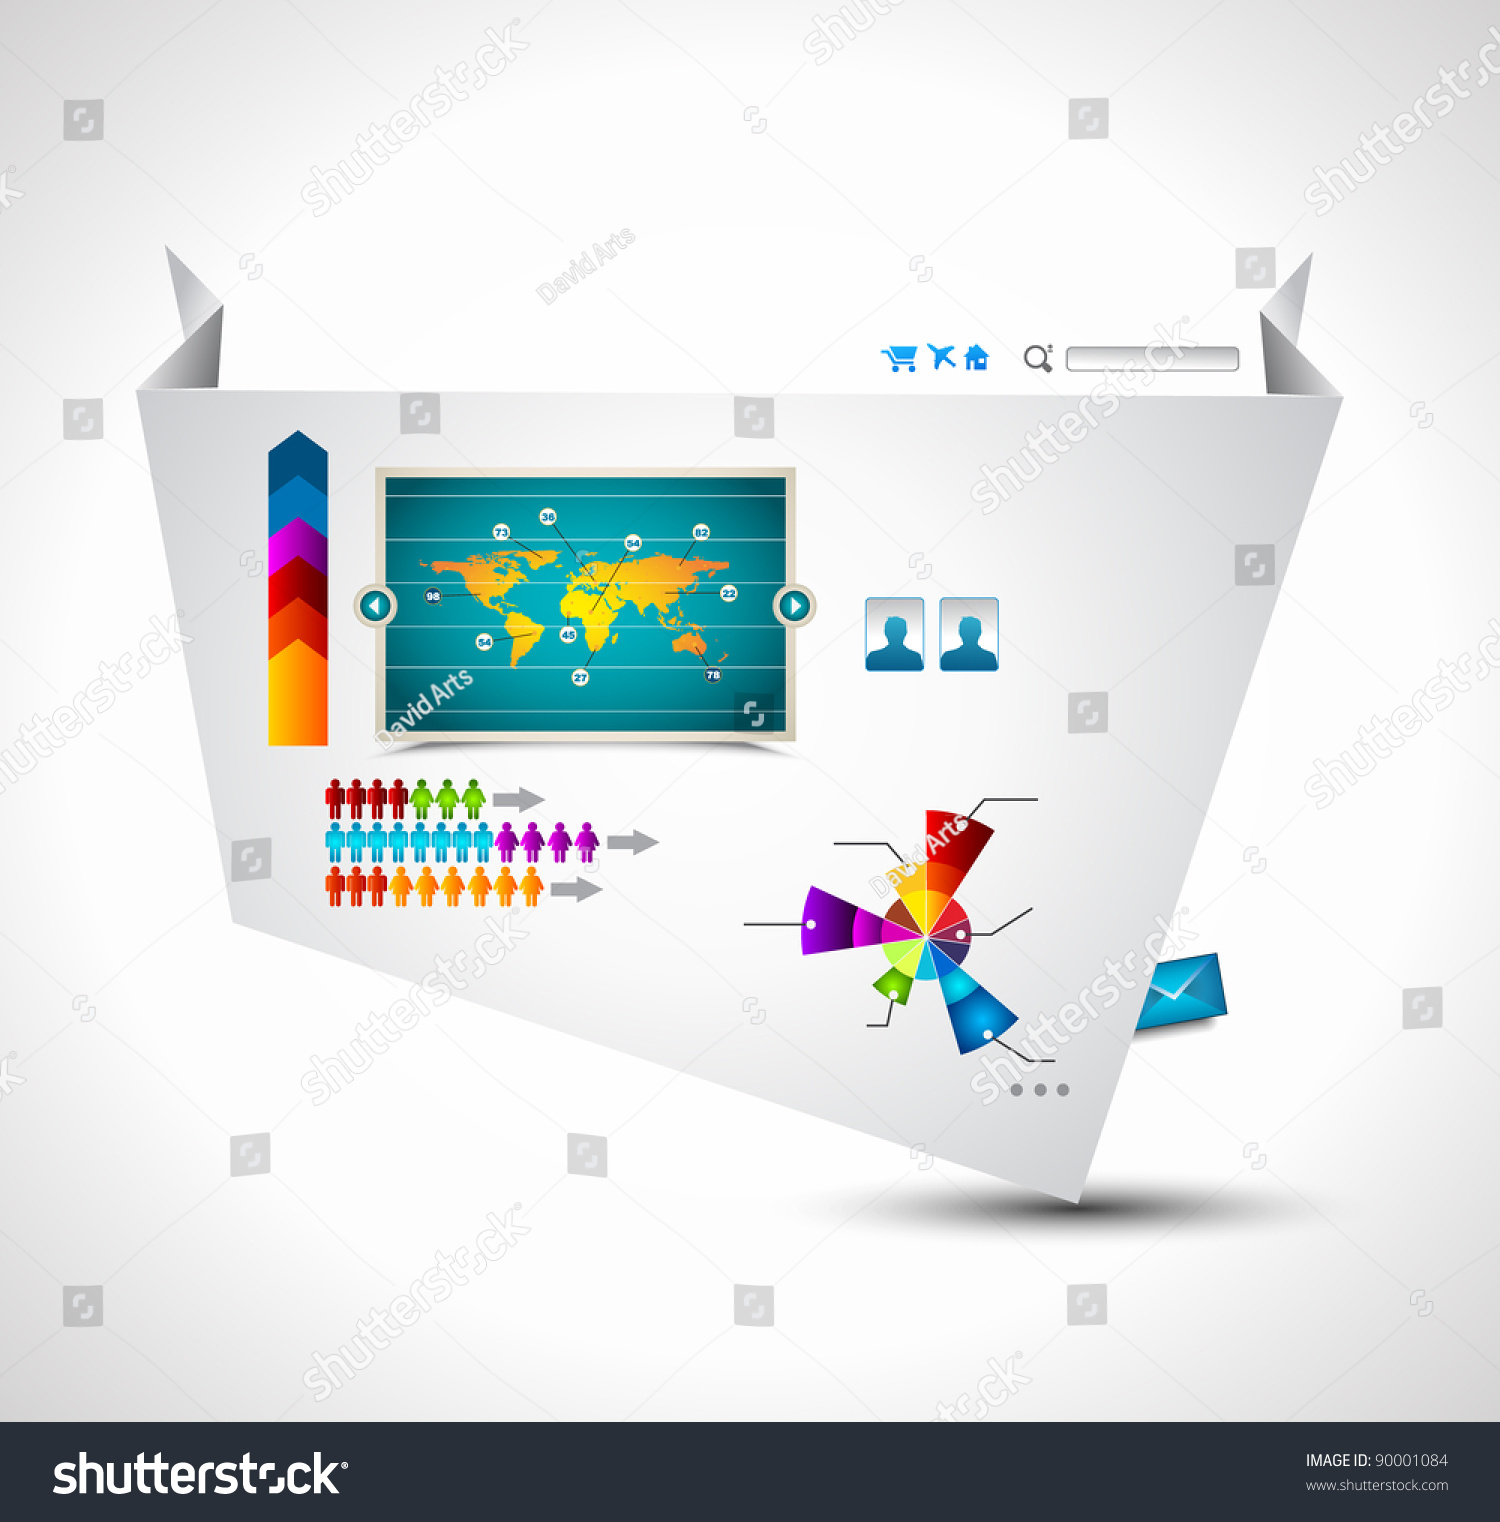 Complex Origami Website Elegant Design Business Stock Illustration Diagrams For Presentations Template With A Lot Of